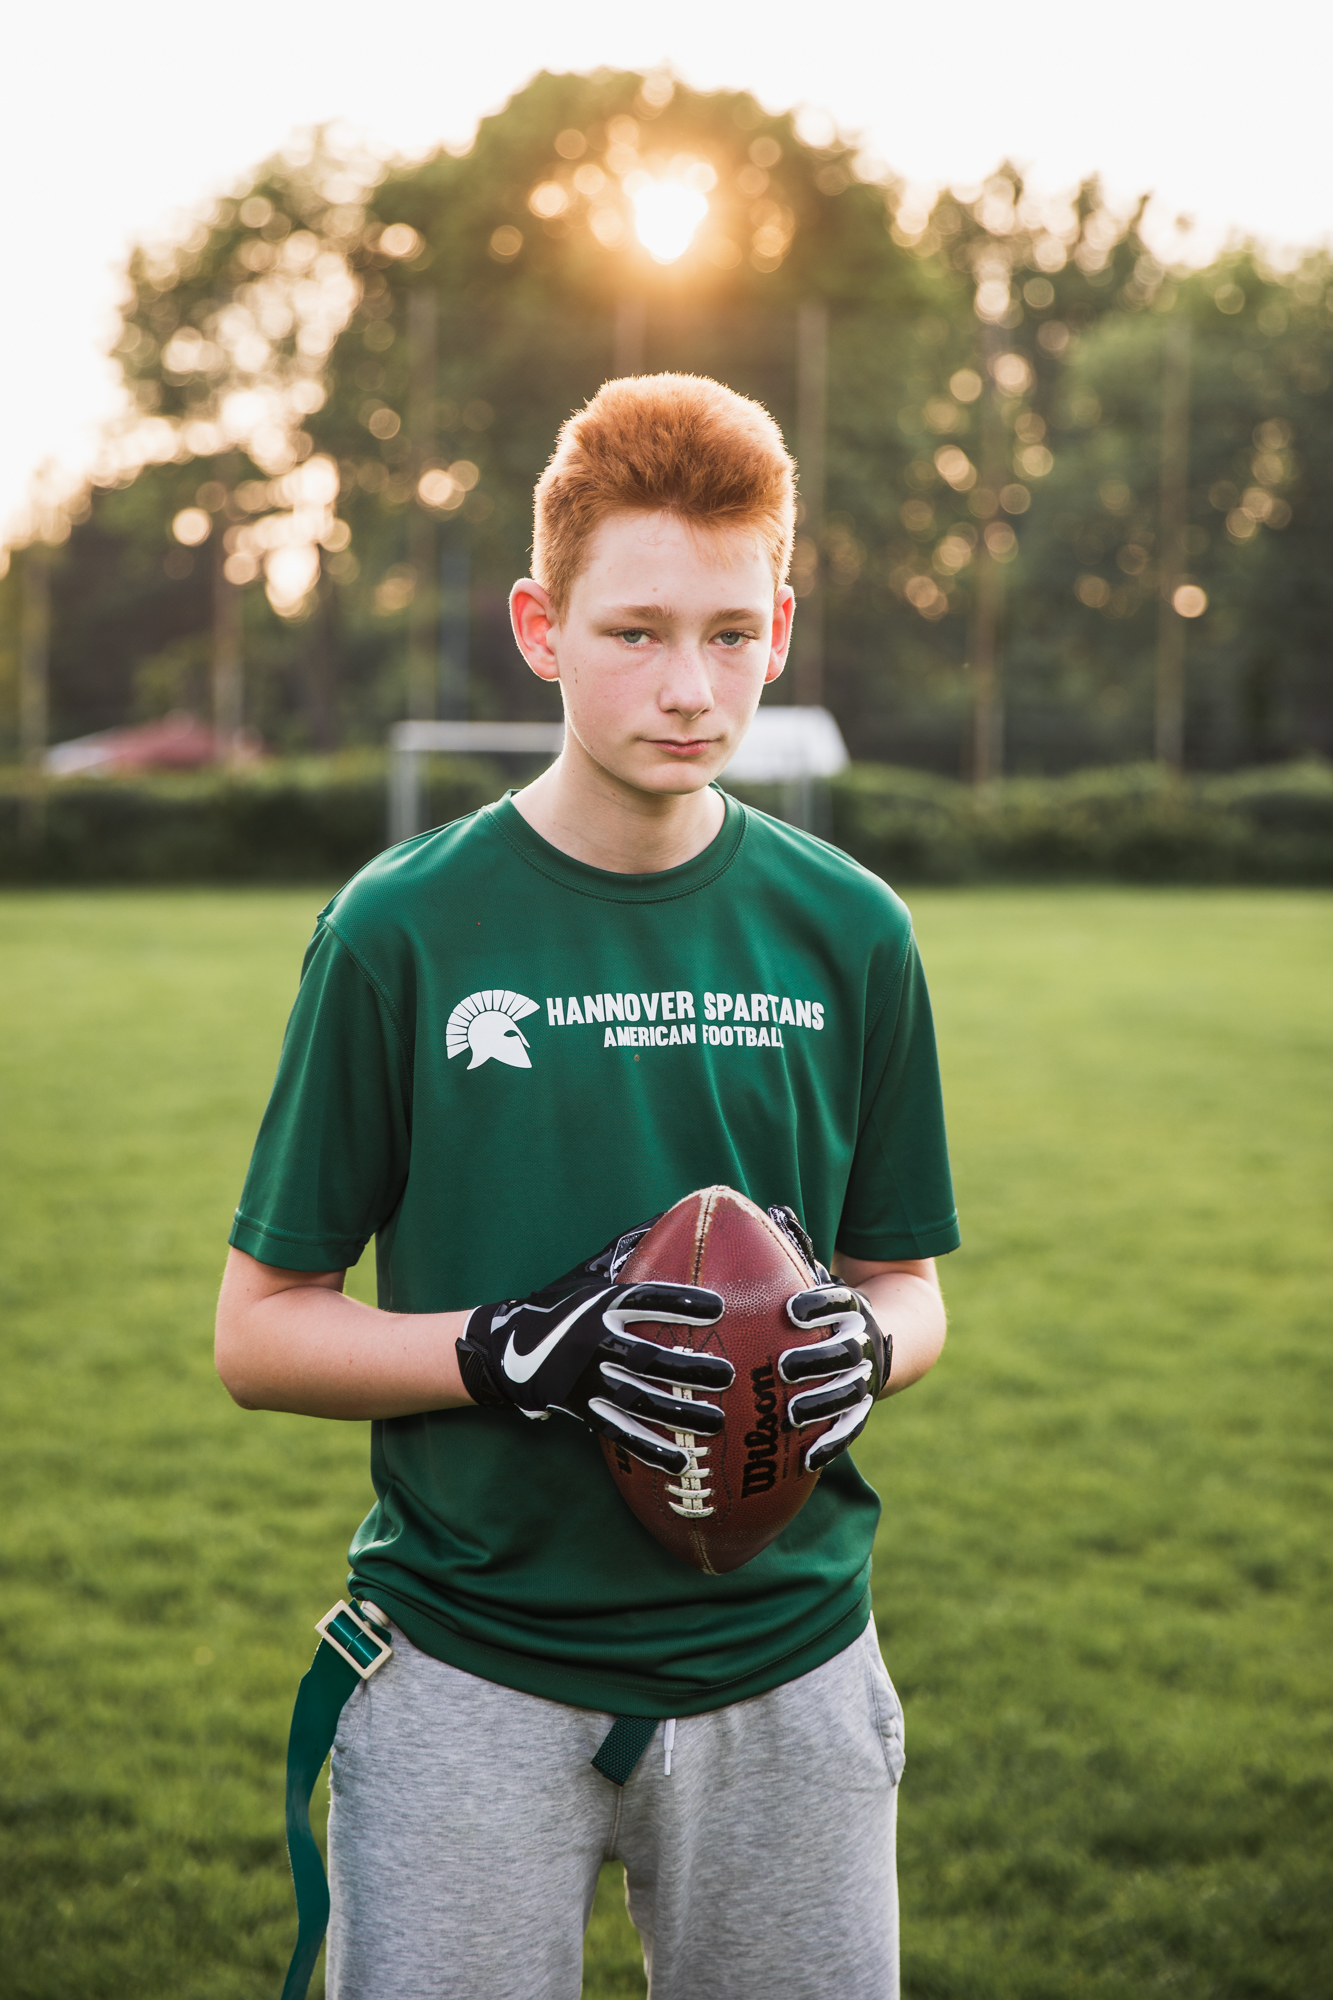 Leon, 13 years, Hannover Spartans